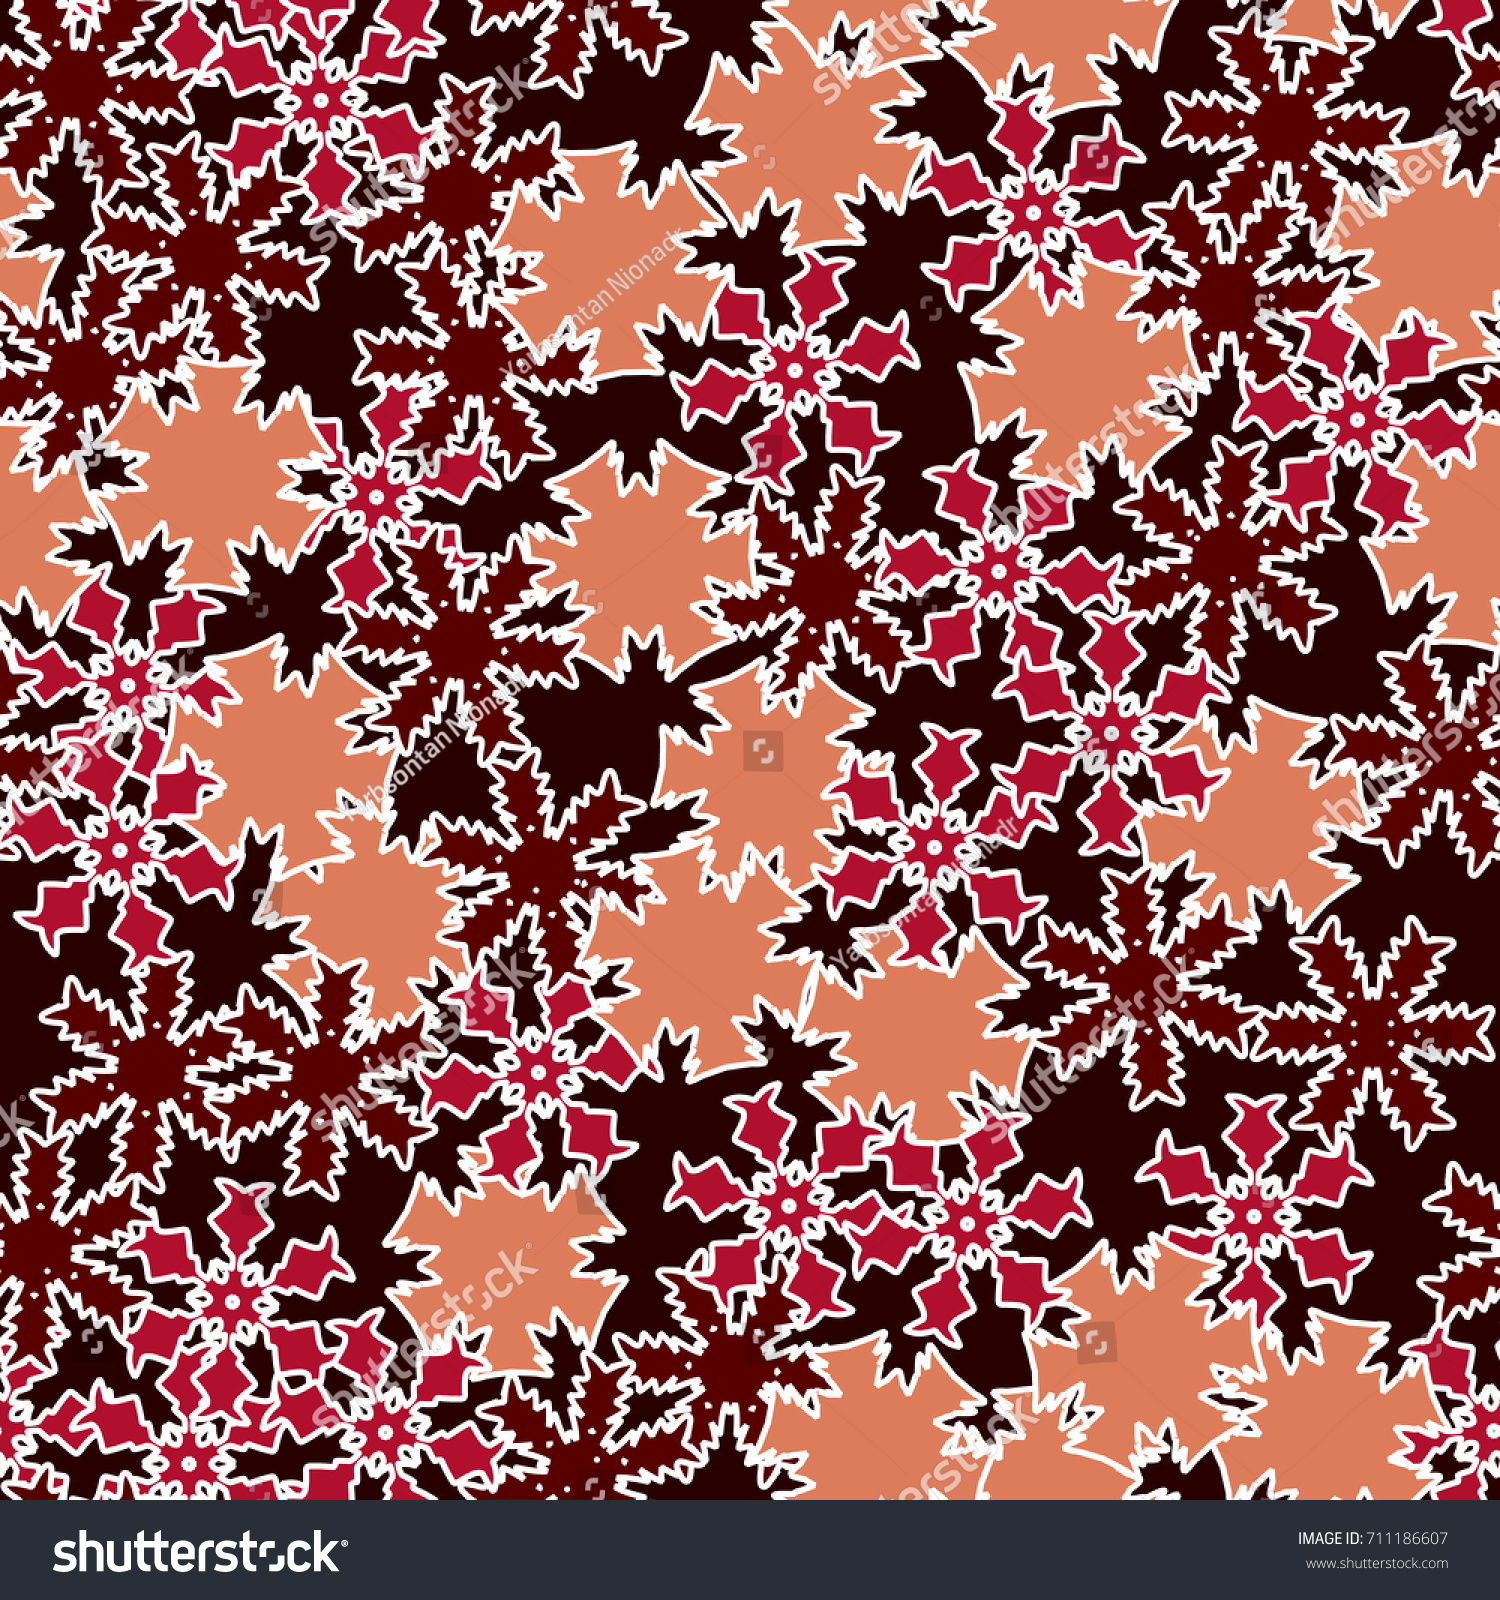 Seamless Pattern Colored Snowflakes Falling Disarray Stock Vector ...